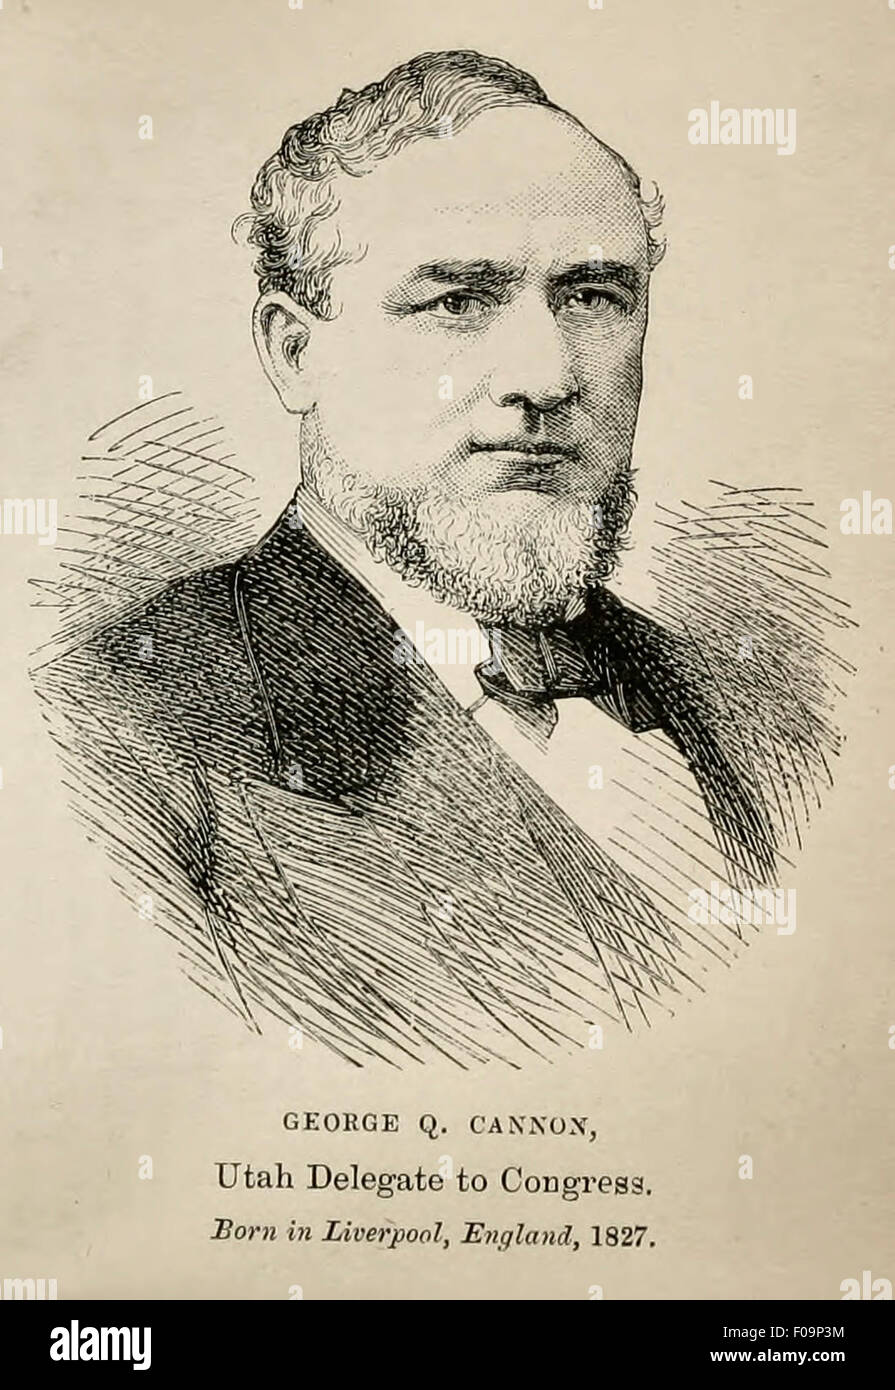 George Q Cannon - Utah Delegate to Congress - Born in Liverpool , England 1827 - Stock Image